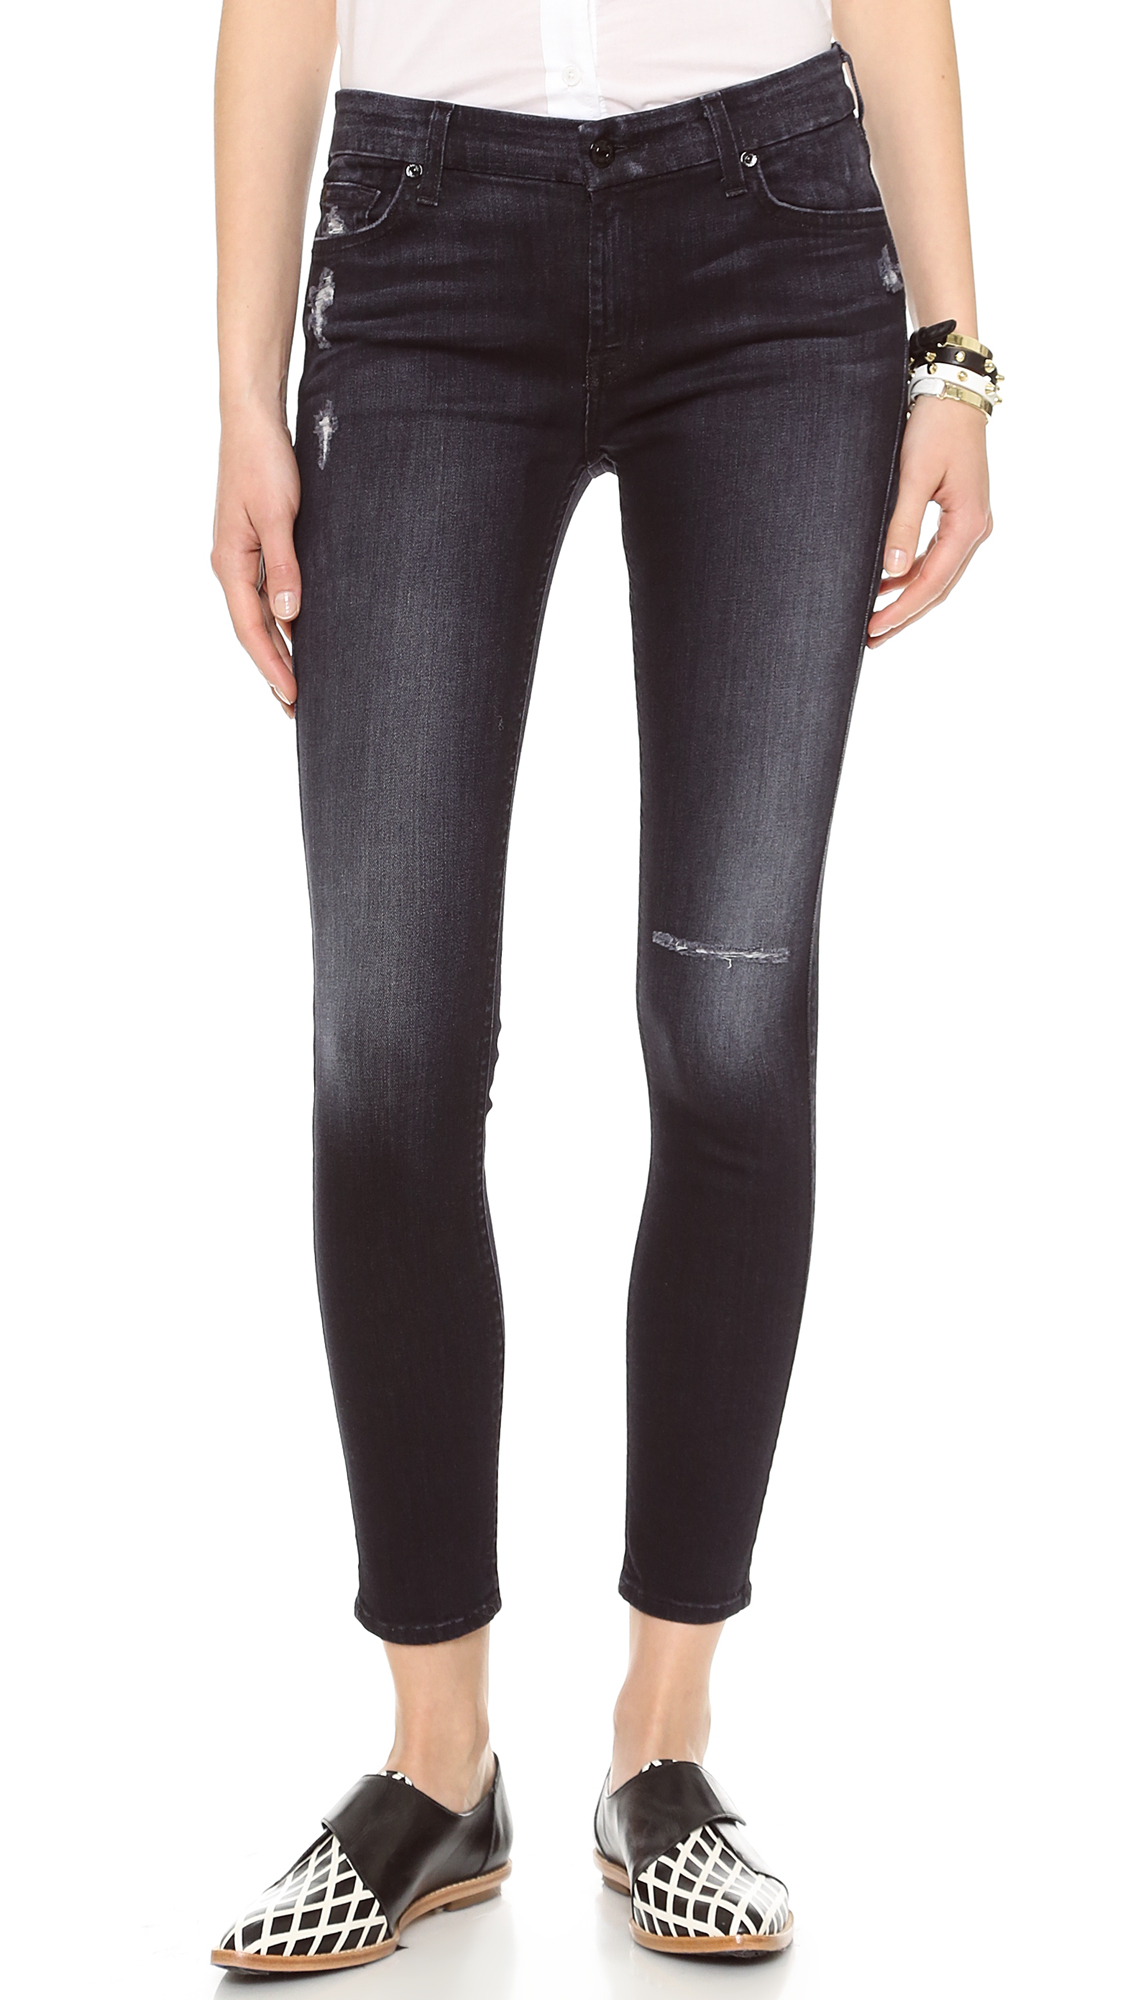 7 For All Mankind Ankle Skinny Jeans with Holes Slim Illusion Washed Black 2 in Black (Slim ...